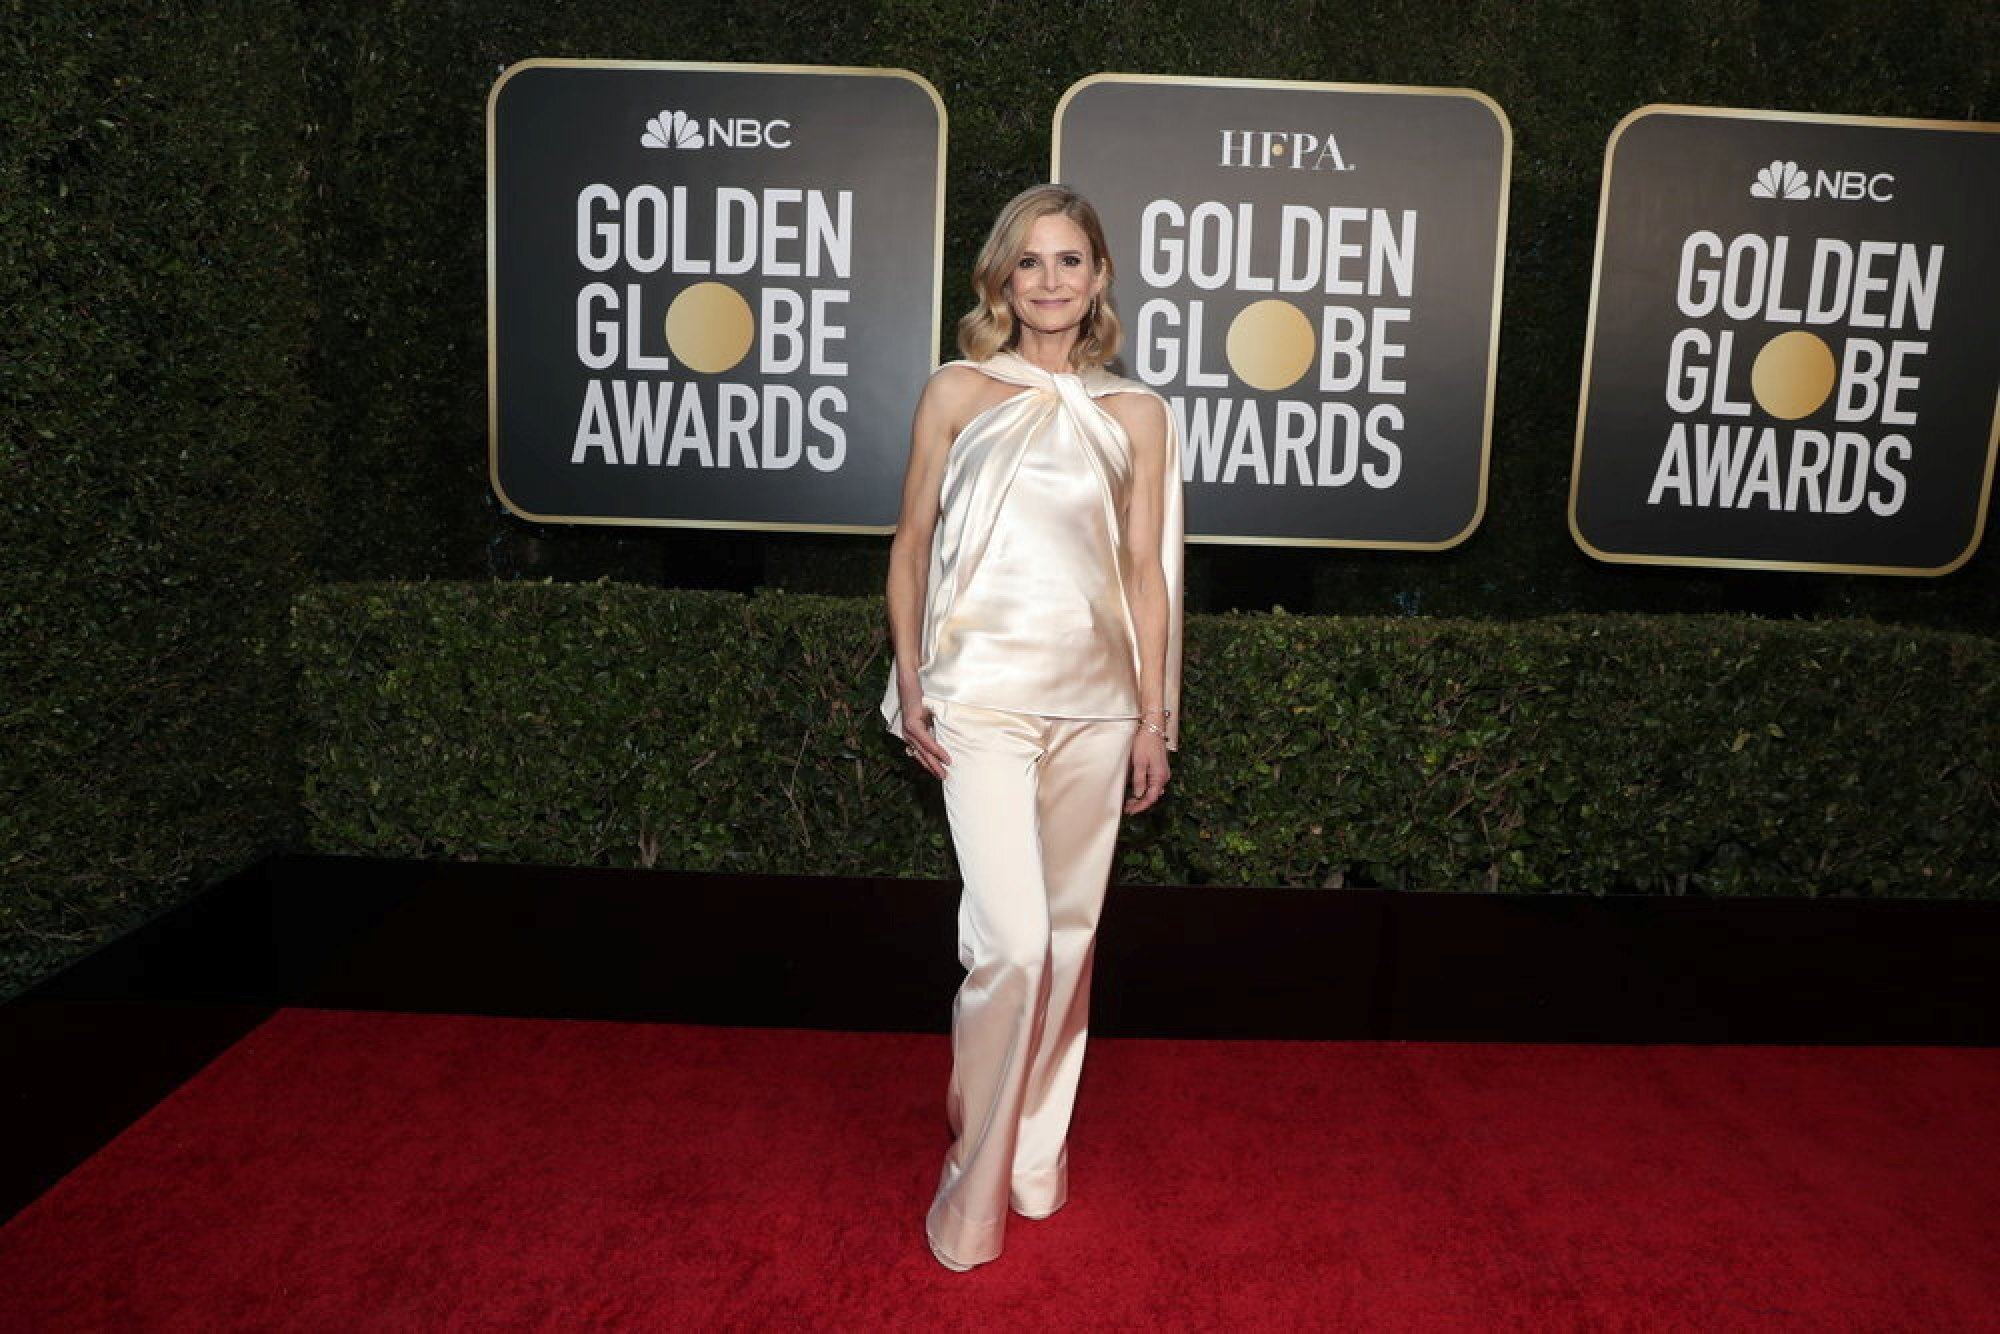 Kyra Sedgwick poses on the red carpet in at the annual Golden Globe Awards in Beverly Hills, California, USA. Photo: NBC via Reuters